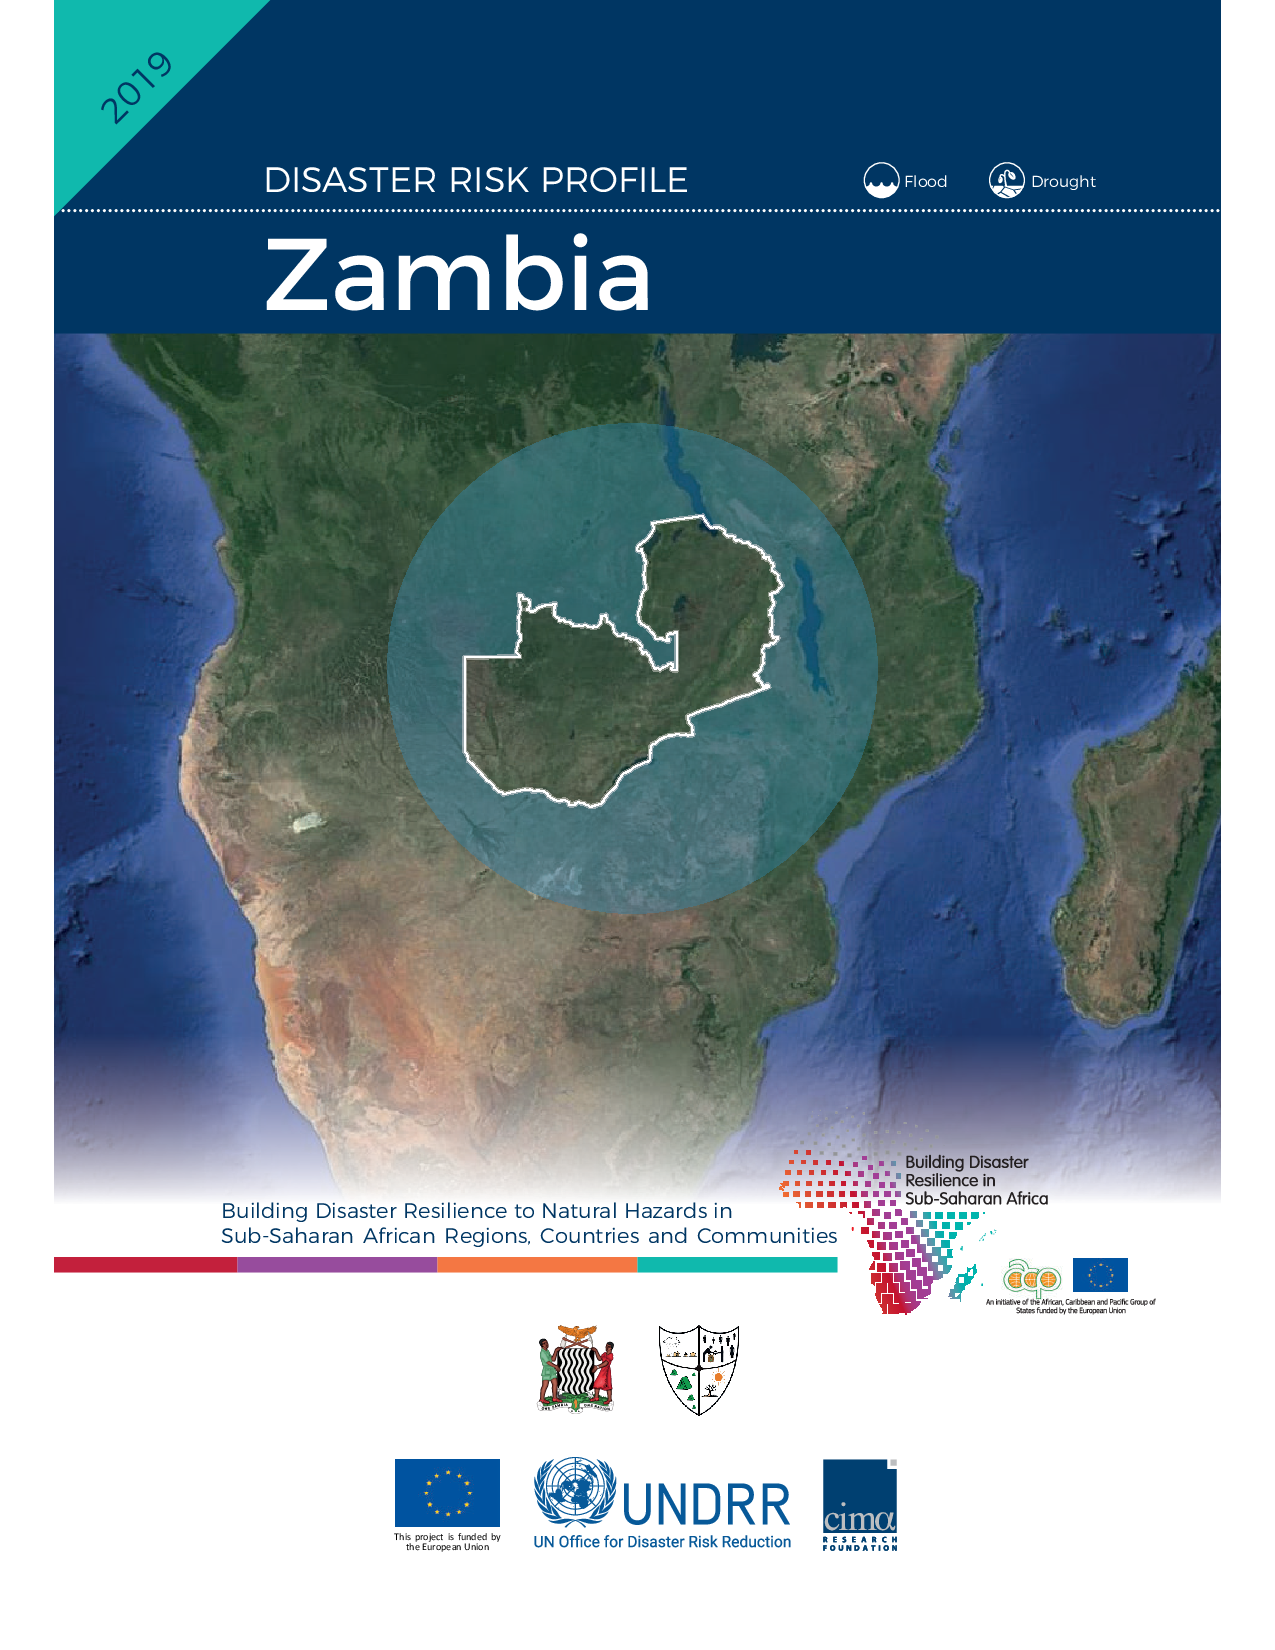 ZMB: Zambia Risk Profile - Floods & Droughts (2019)